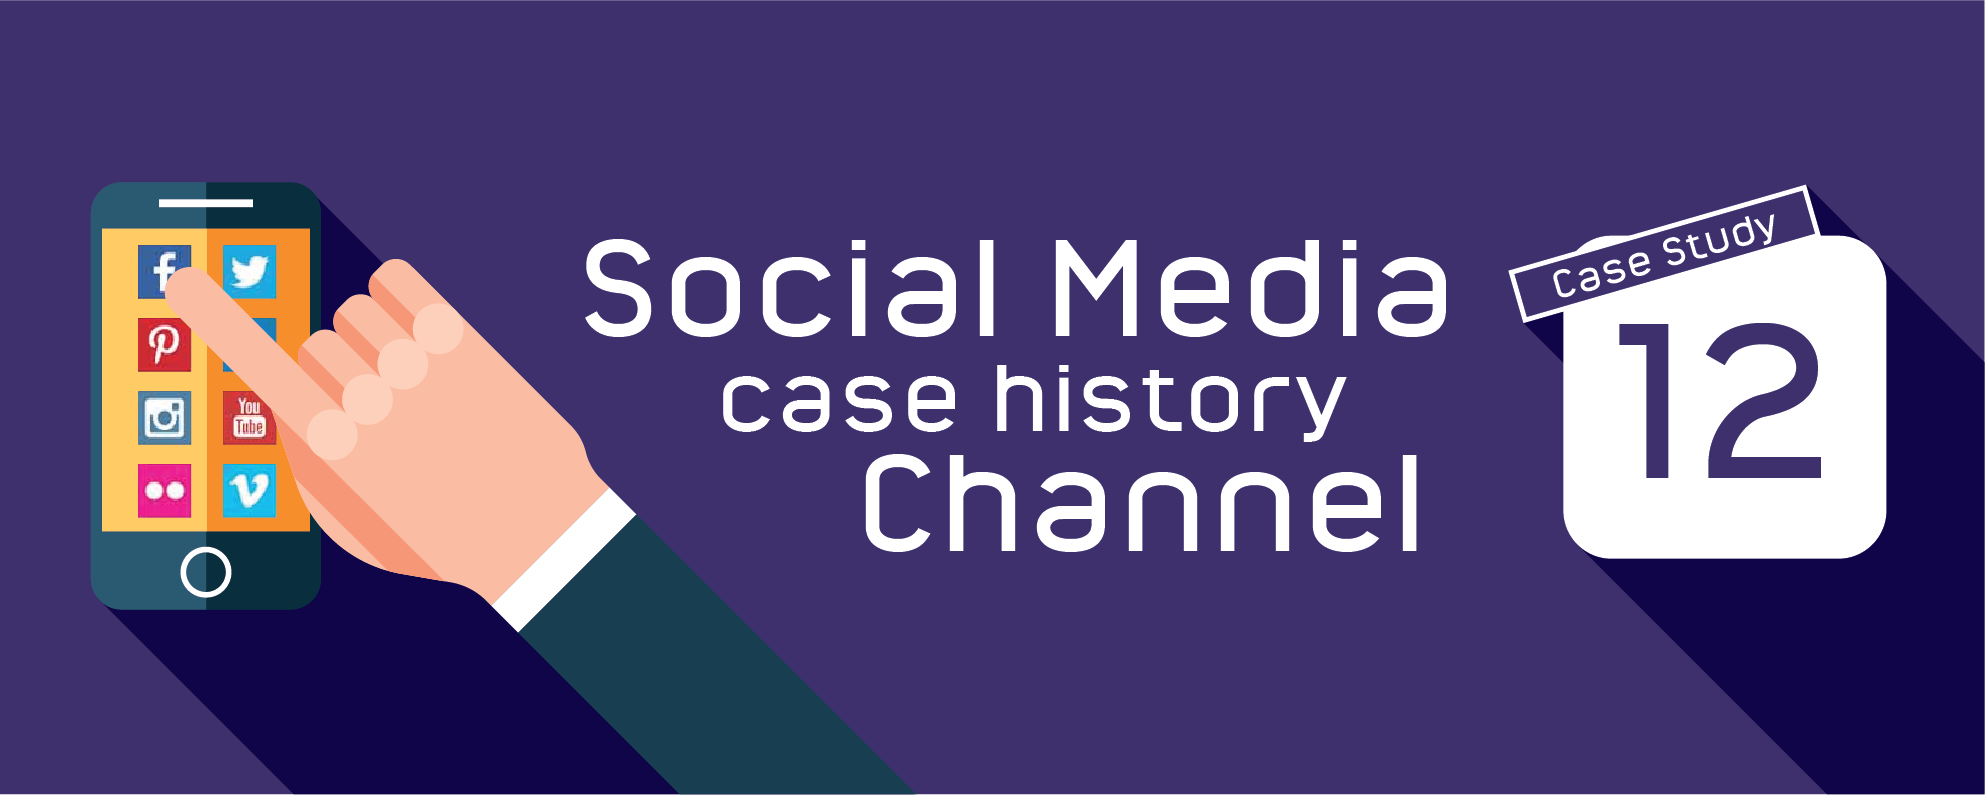 img_social media case history channel_12-02.png